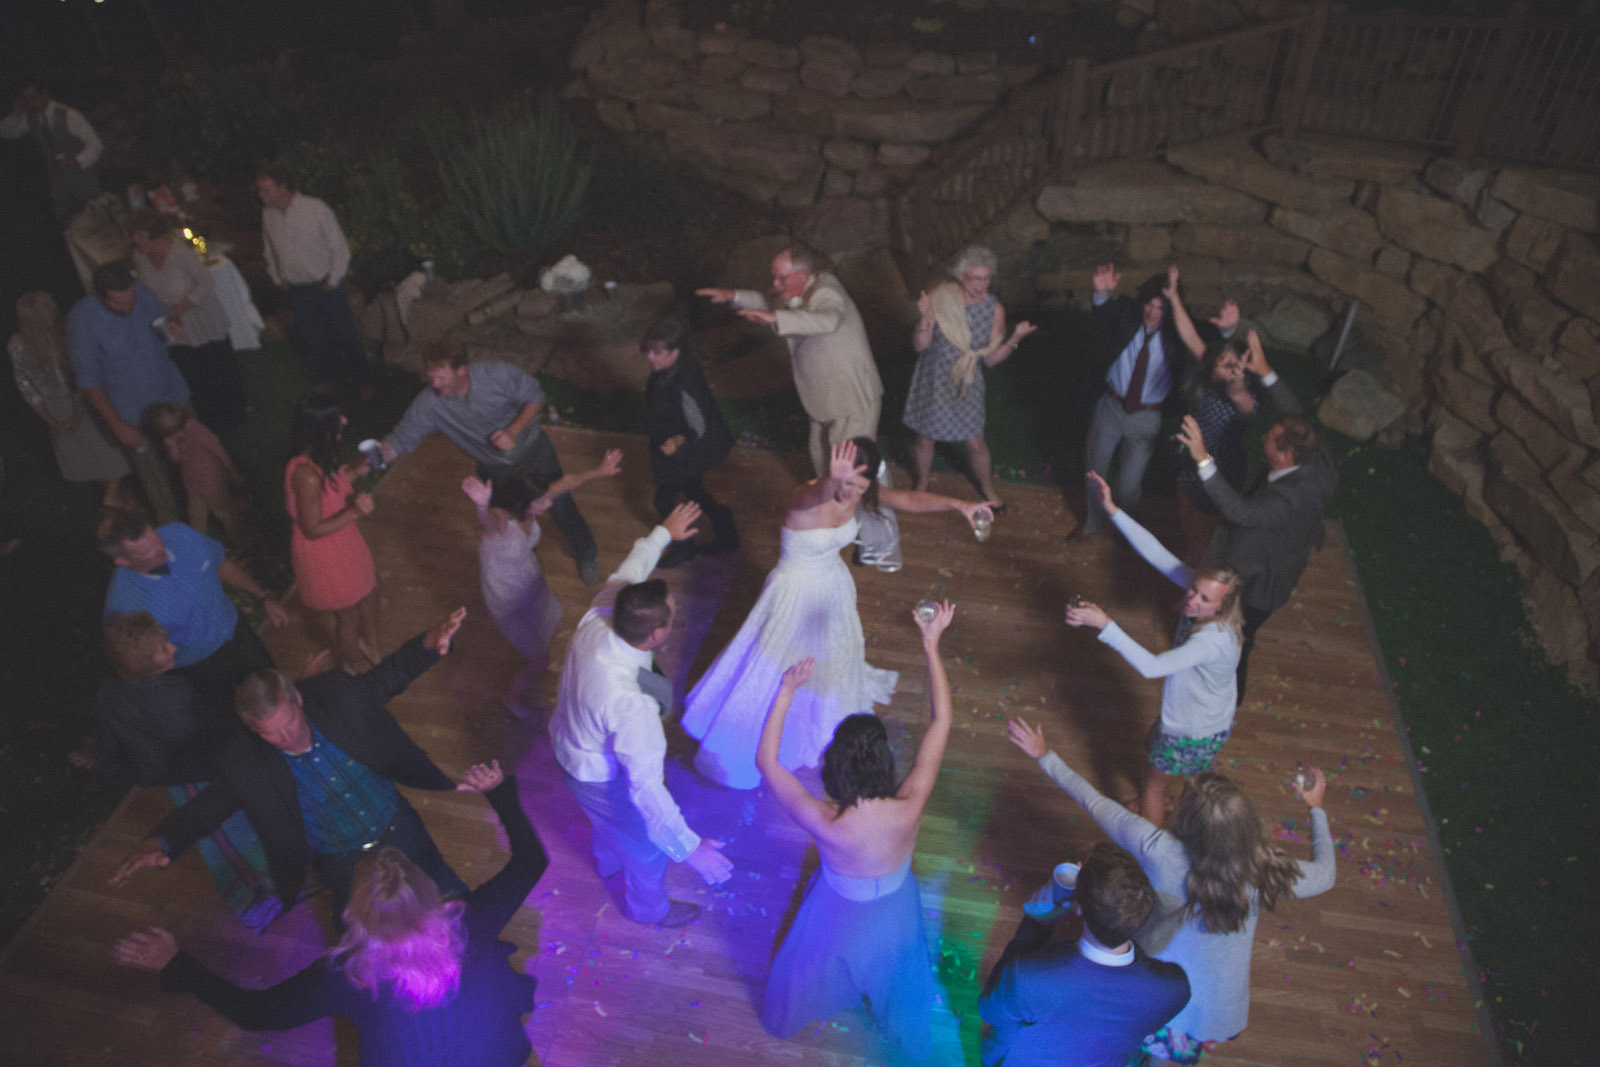 240-reception-ideas-reception-farmington-nm-co-new-mexico-colorado-mancos-ideas-string-lights-cabin-outside-natural-wedding-night-strobe-flash-dance-party